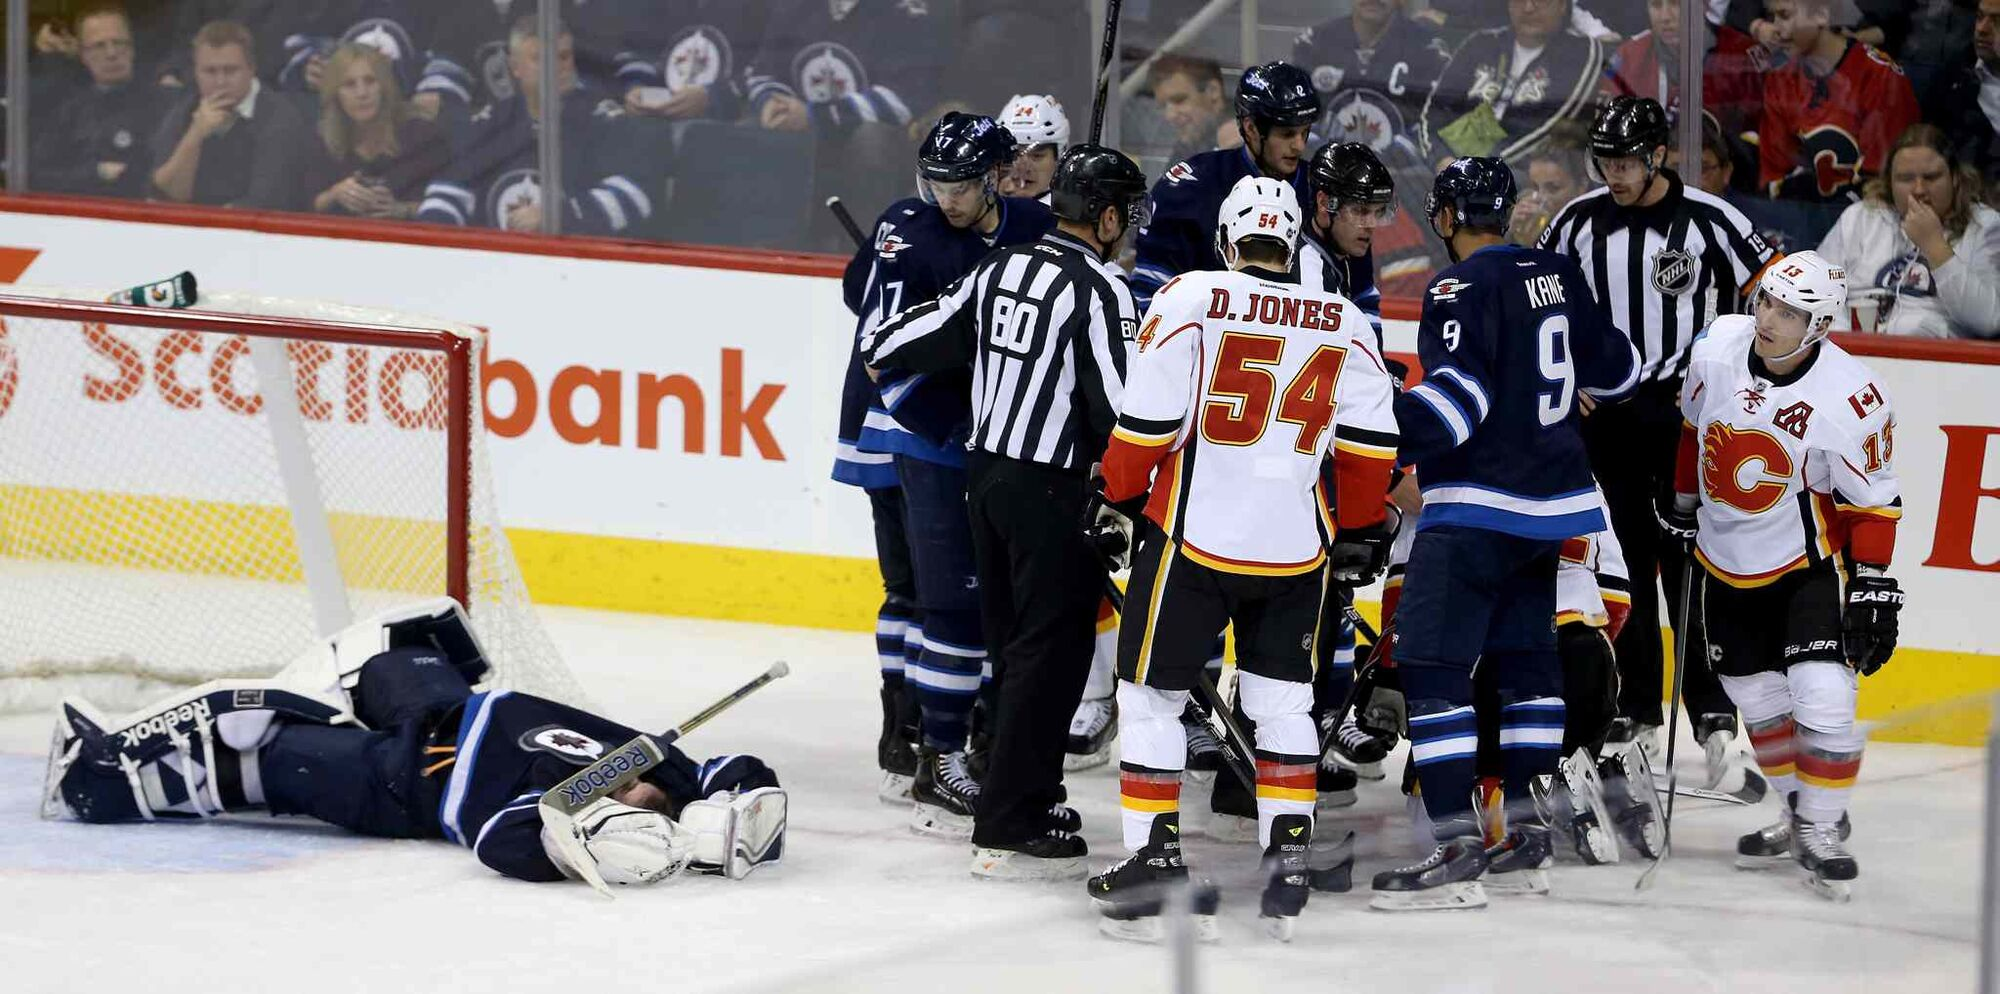 Winnipeg Jets' goaltender Al Montoya (35) lays on the ice after being crushed by Calgary Flames' Lee Stempniak (22) during third period NHL hockey action in Winnipeg Monday, Nov. 18, 2013.